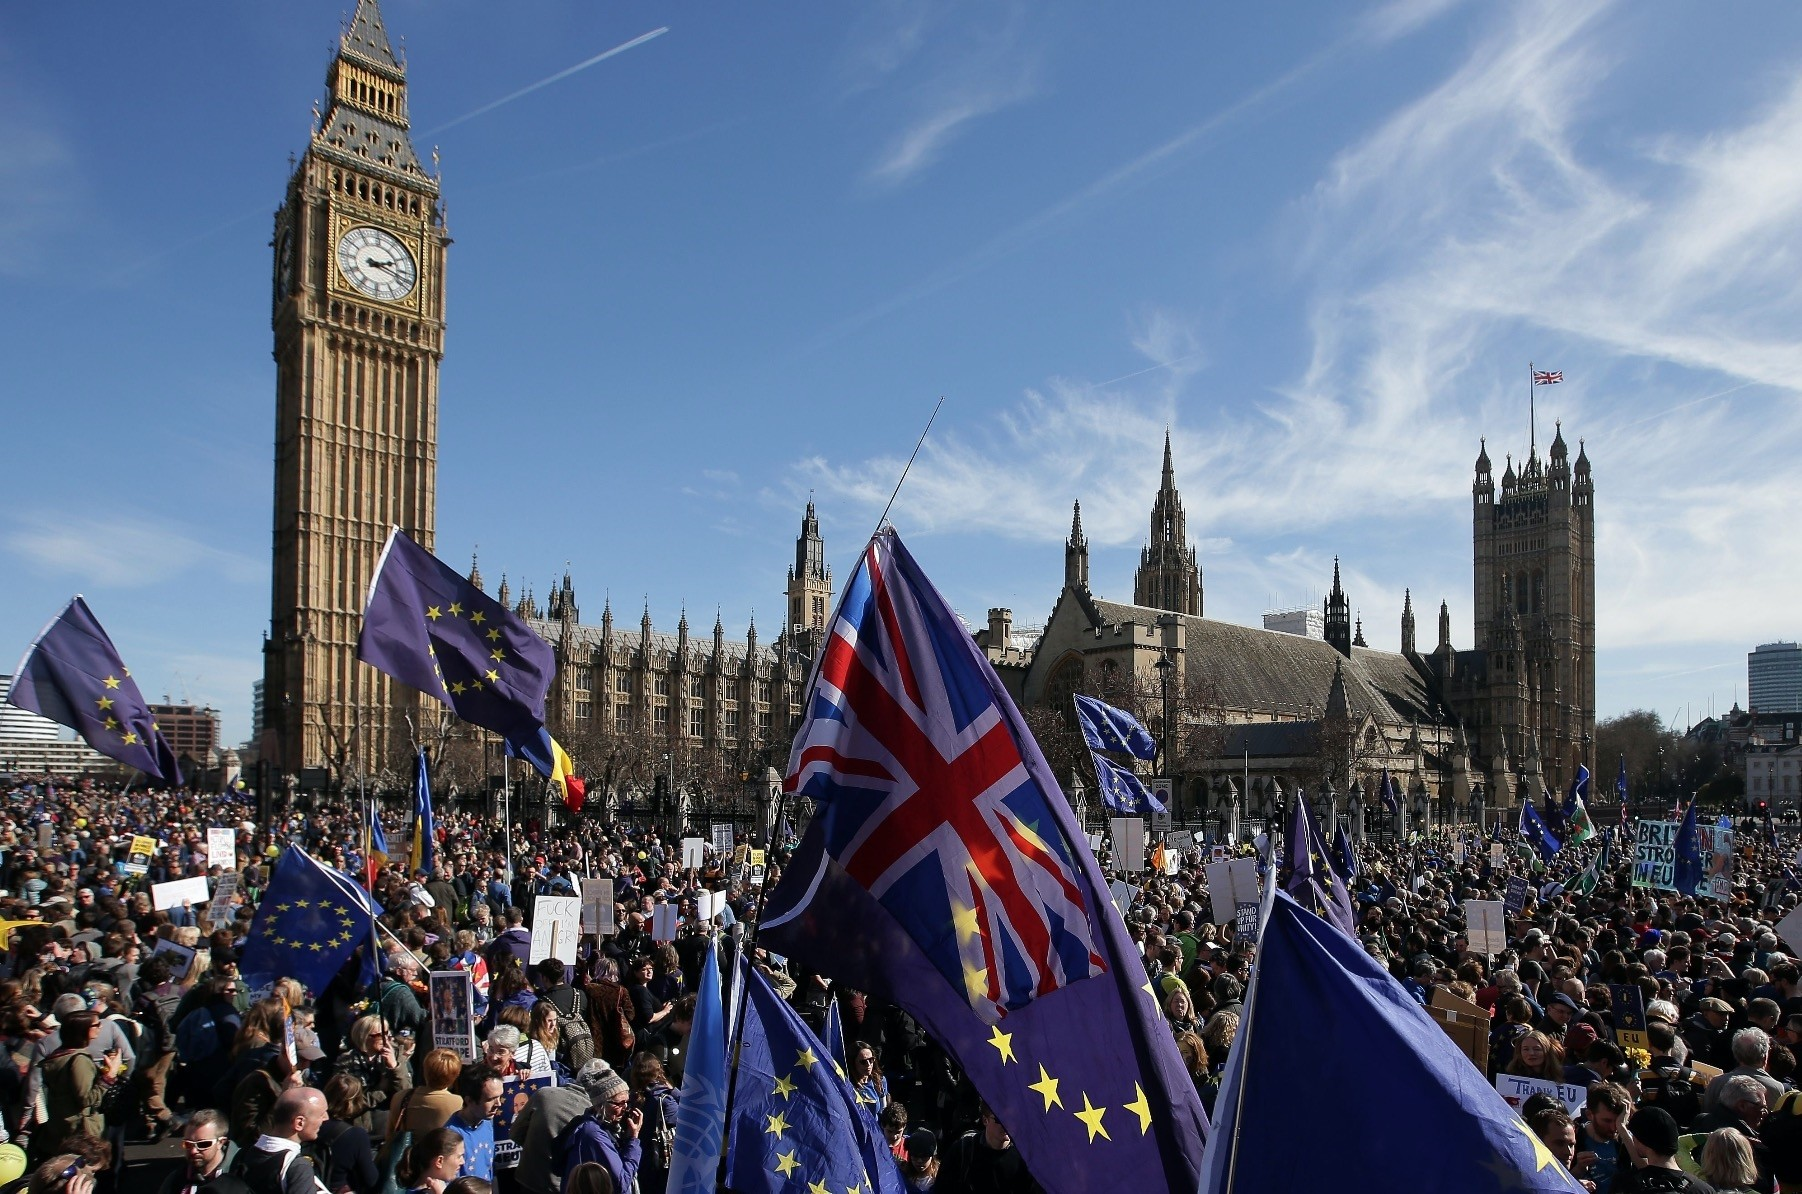 Demonstrators holding EU and U.K. flags gather in front of the Houses of Parliament in Parliament Square following an anti-Brexit, pro-EU march in London, March 25, 2017.